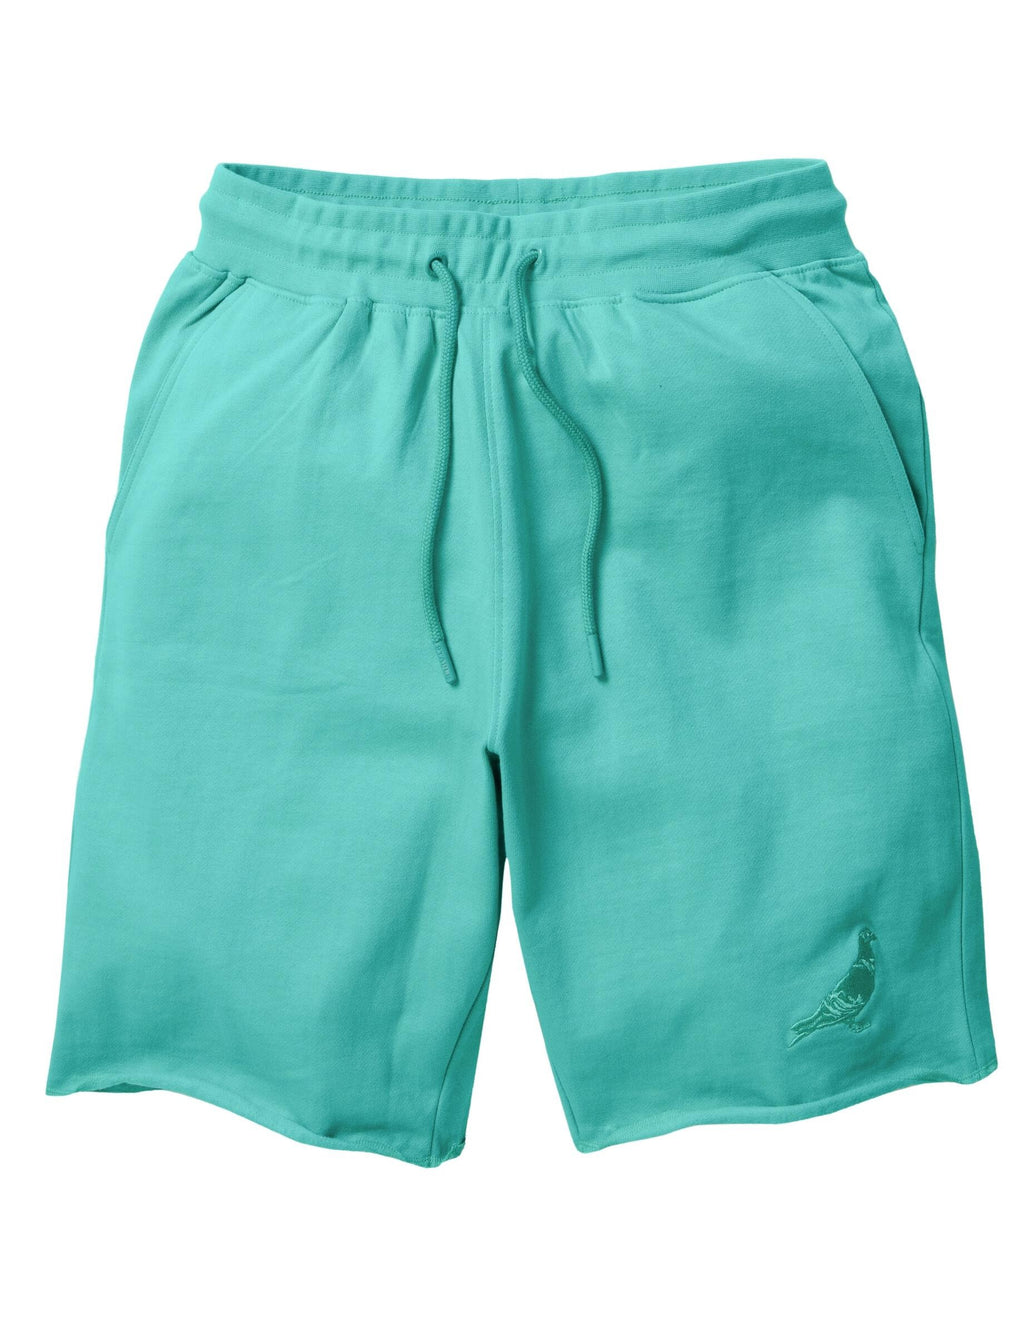 Garment Wash Pigeon Sweatshort - Shorts | Staple Pigeon